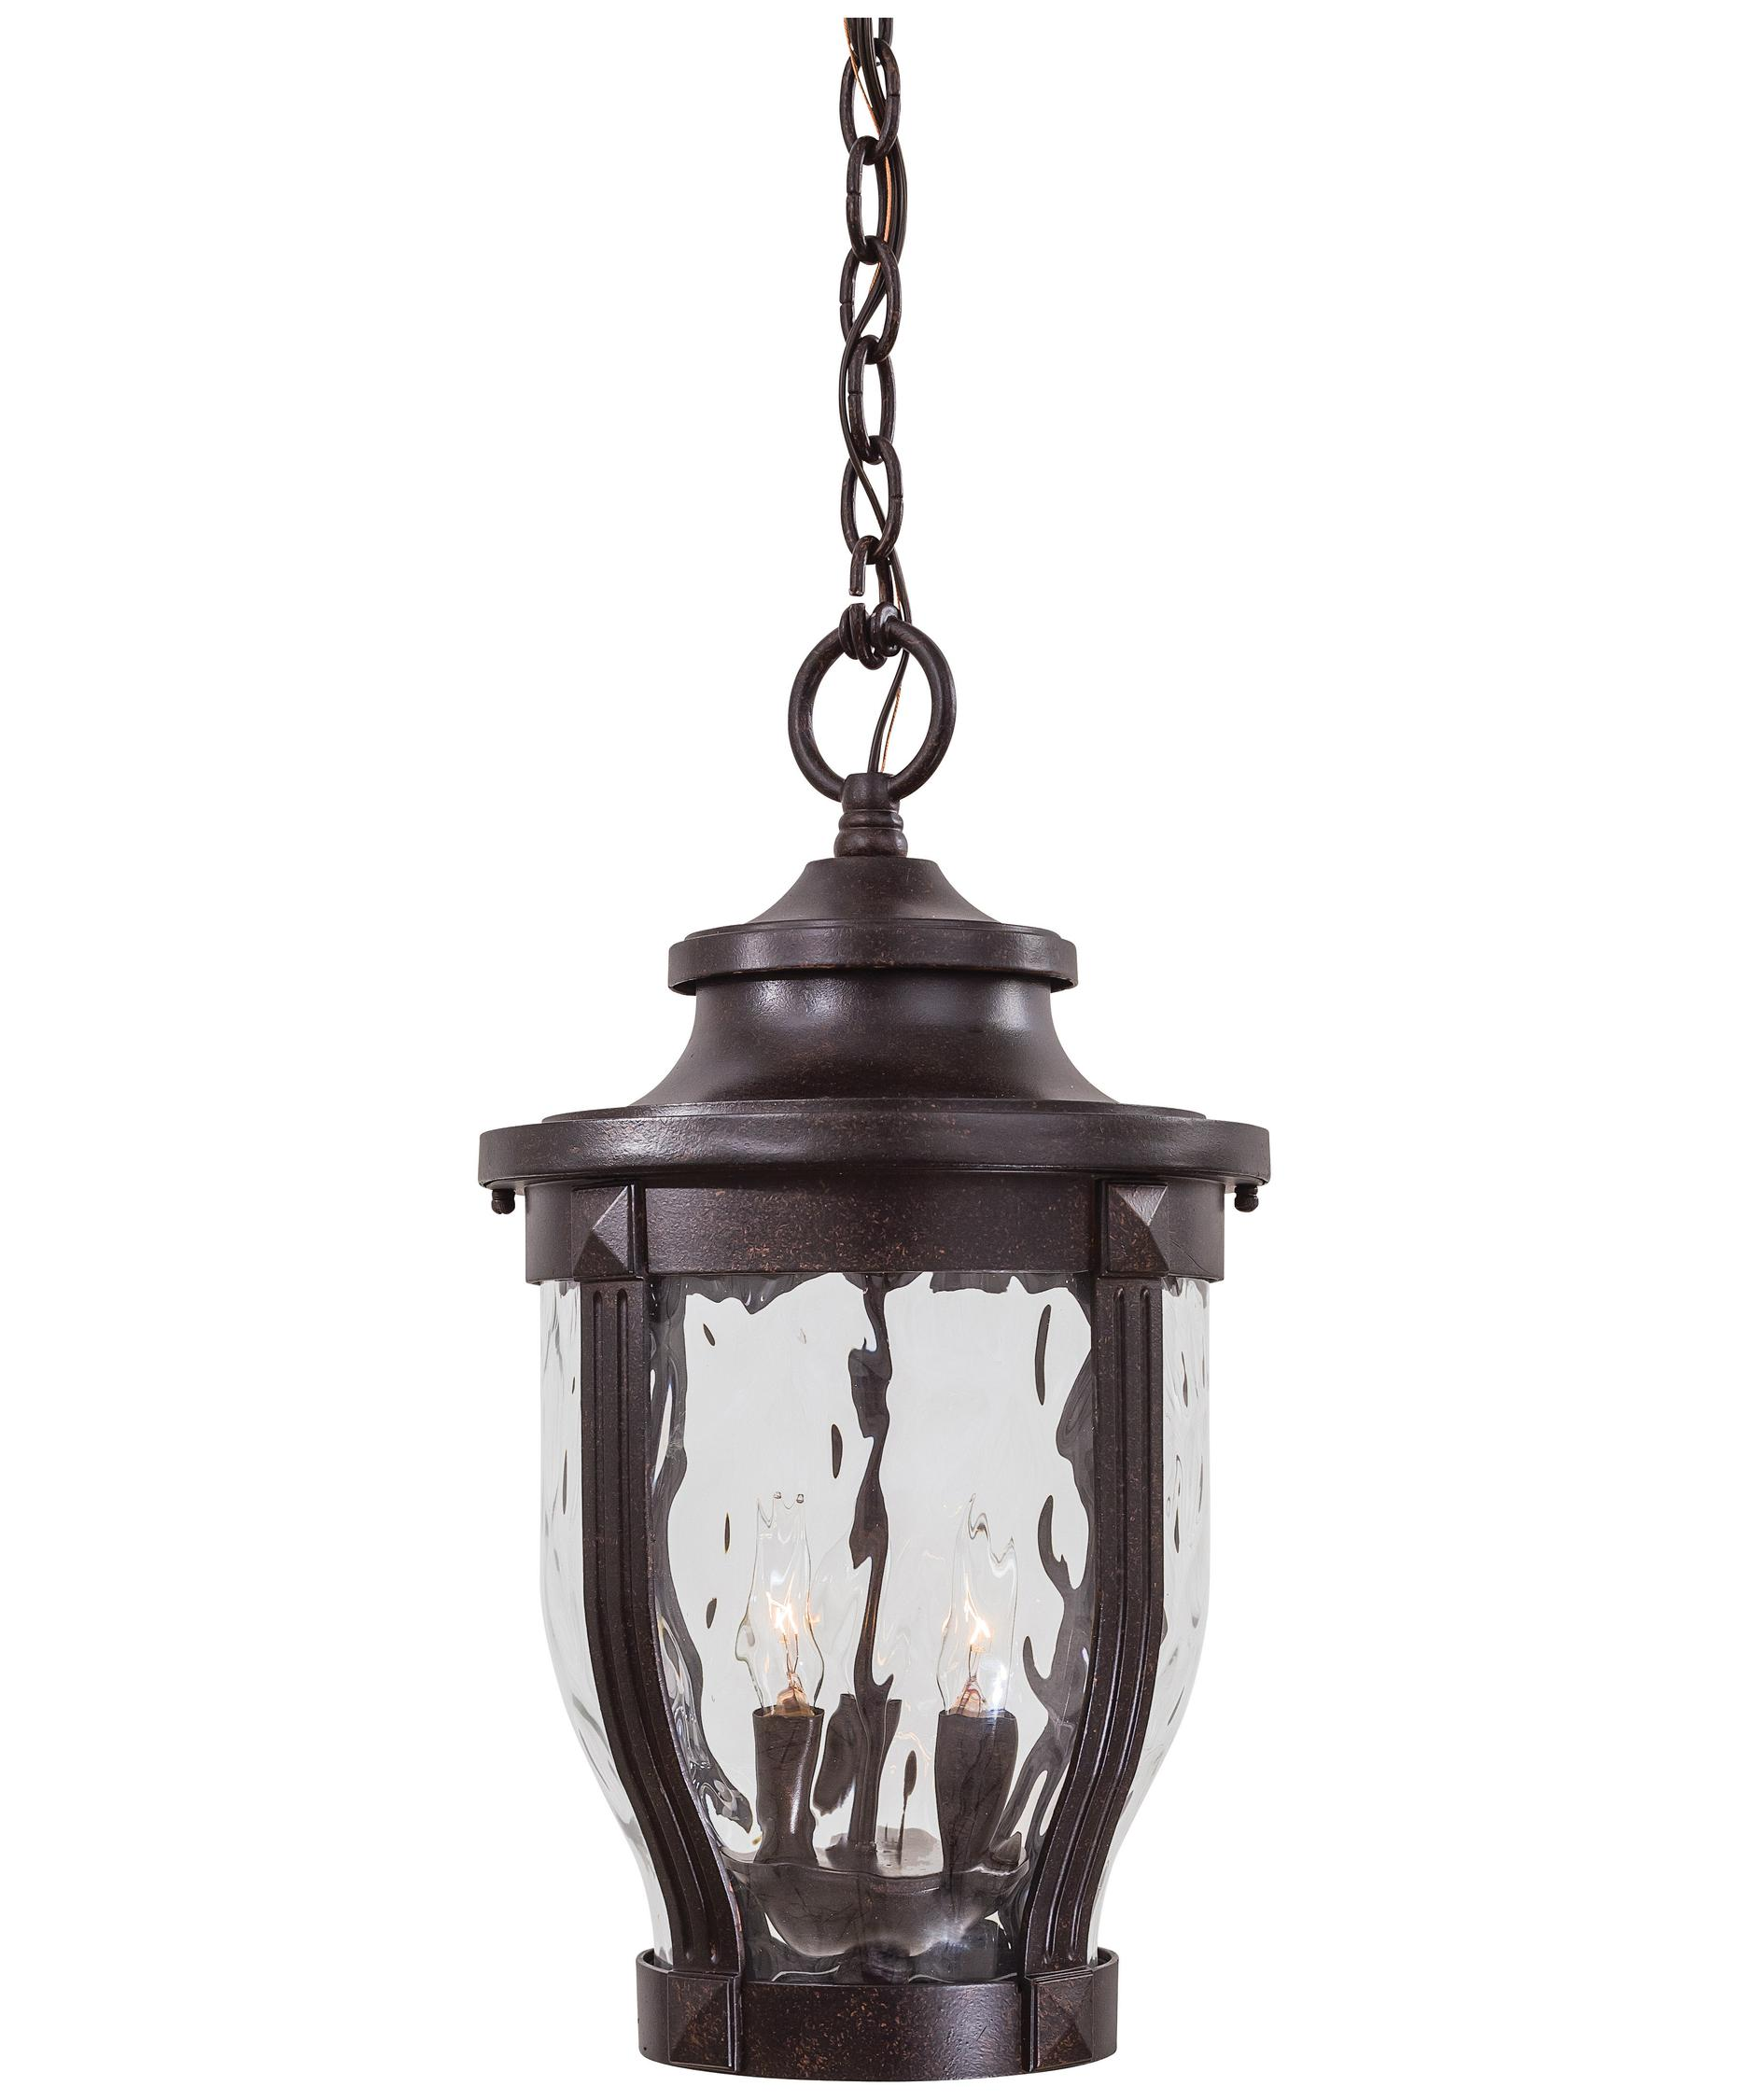 Minka Lavery 8764 Merrimack 3 Light Outdoor Hanging